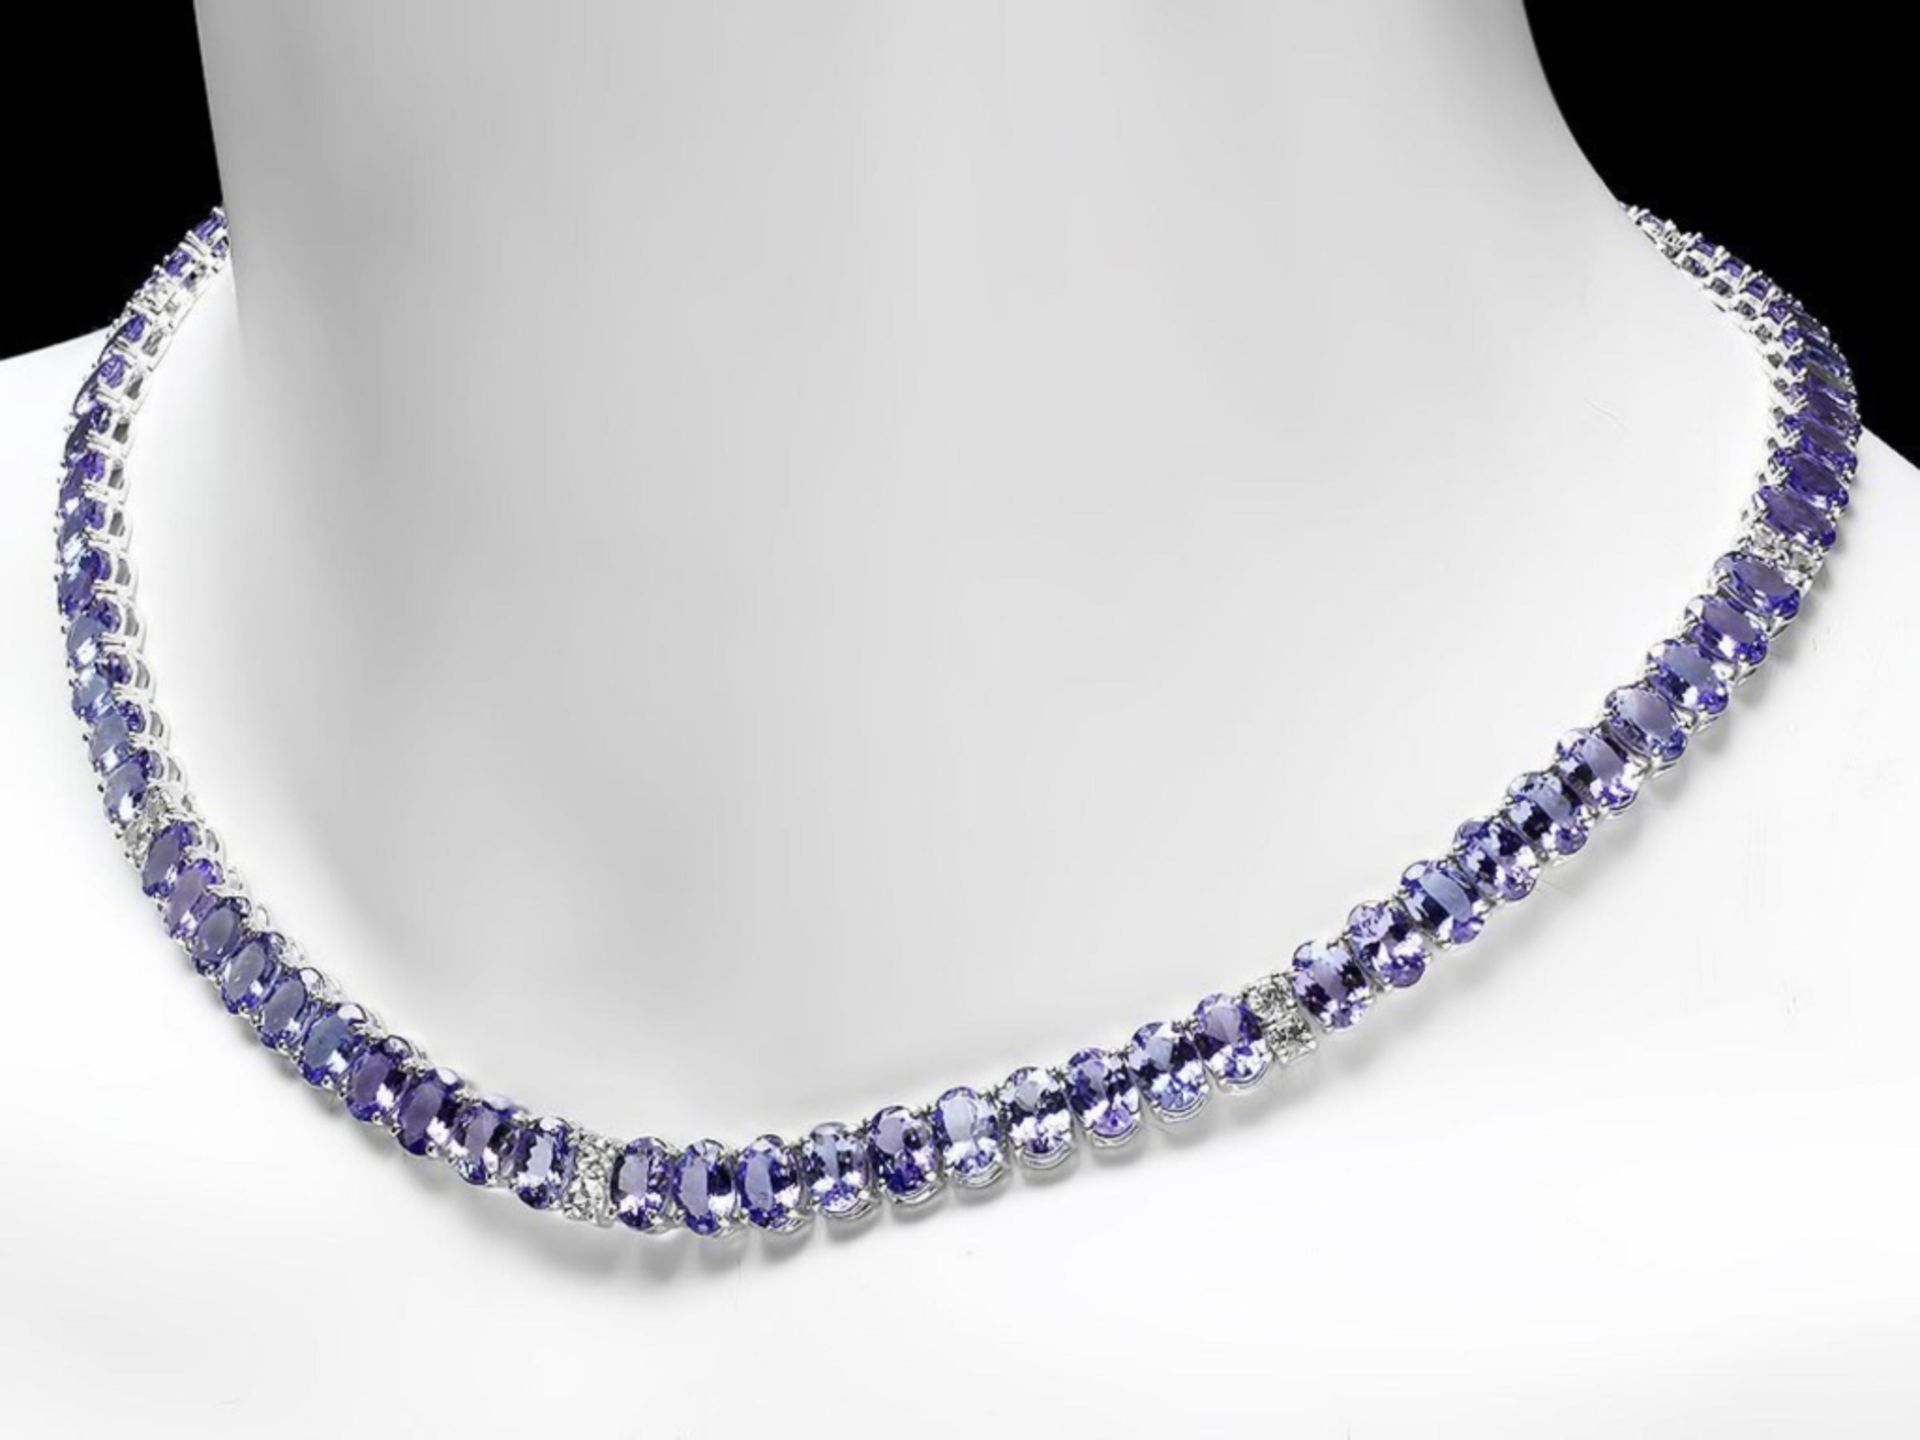 `14k Gold 55.00ct Tanzanite & 1.35ct Diamond Neckl - Image 3 of 5